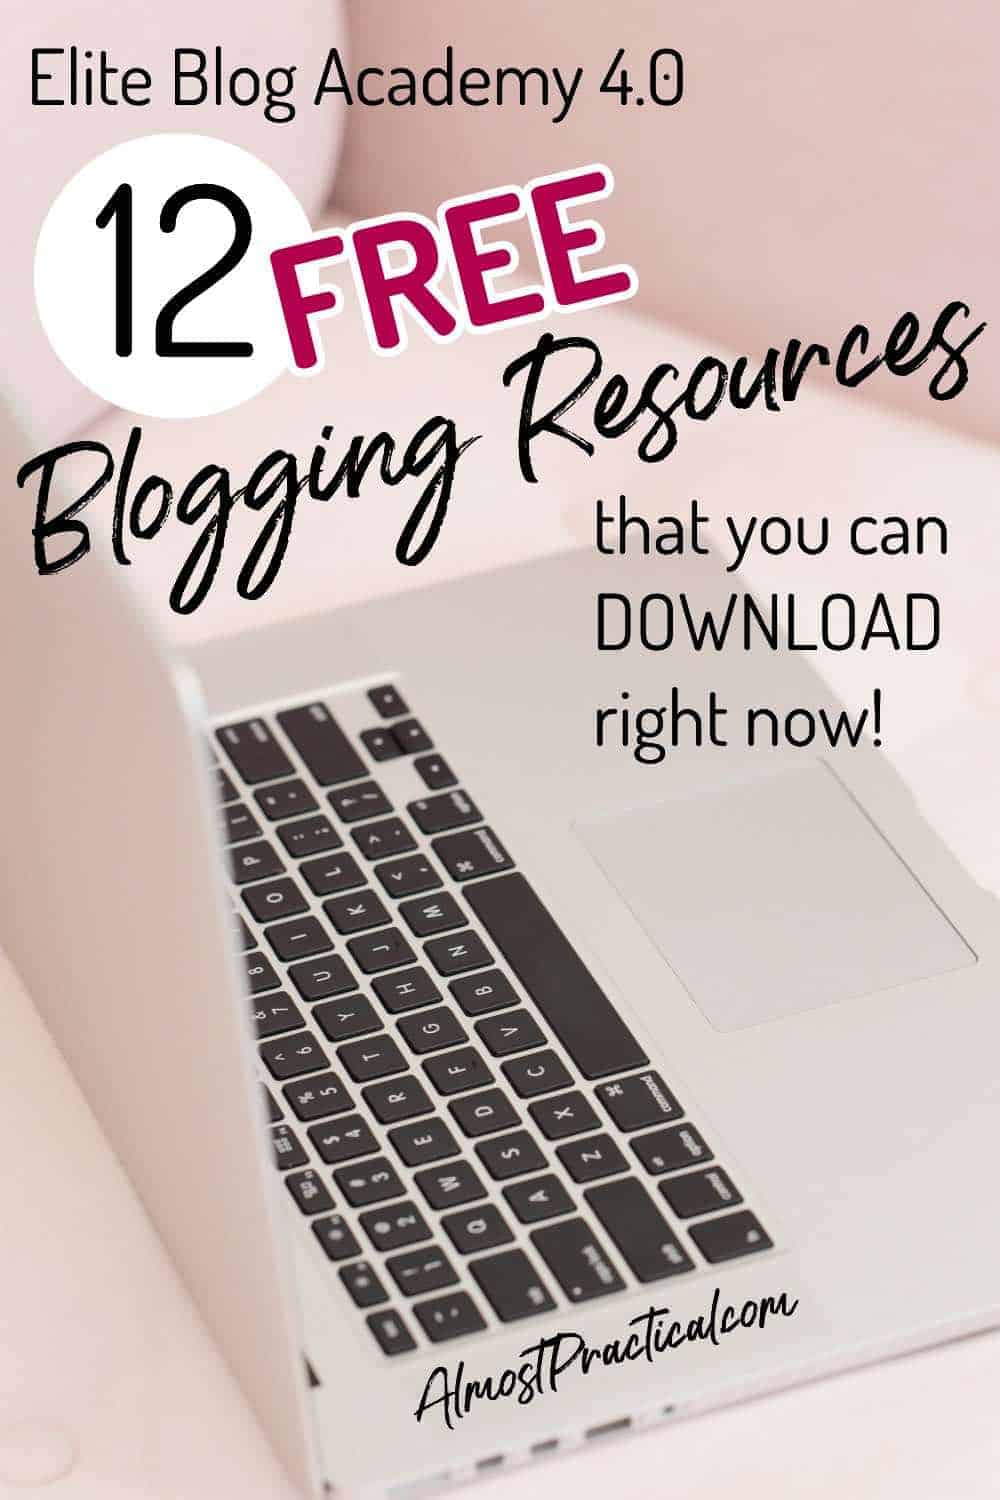 Free blogging resources that you can use to make your blog better. Use these tools and learn everything from how to organize your blog, to finding content ideas for your blog posts, to how to make money blogging. #blogging